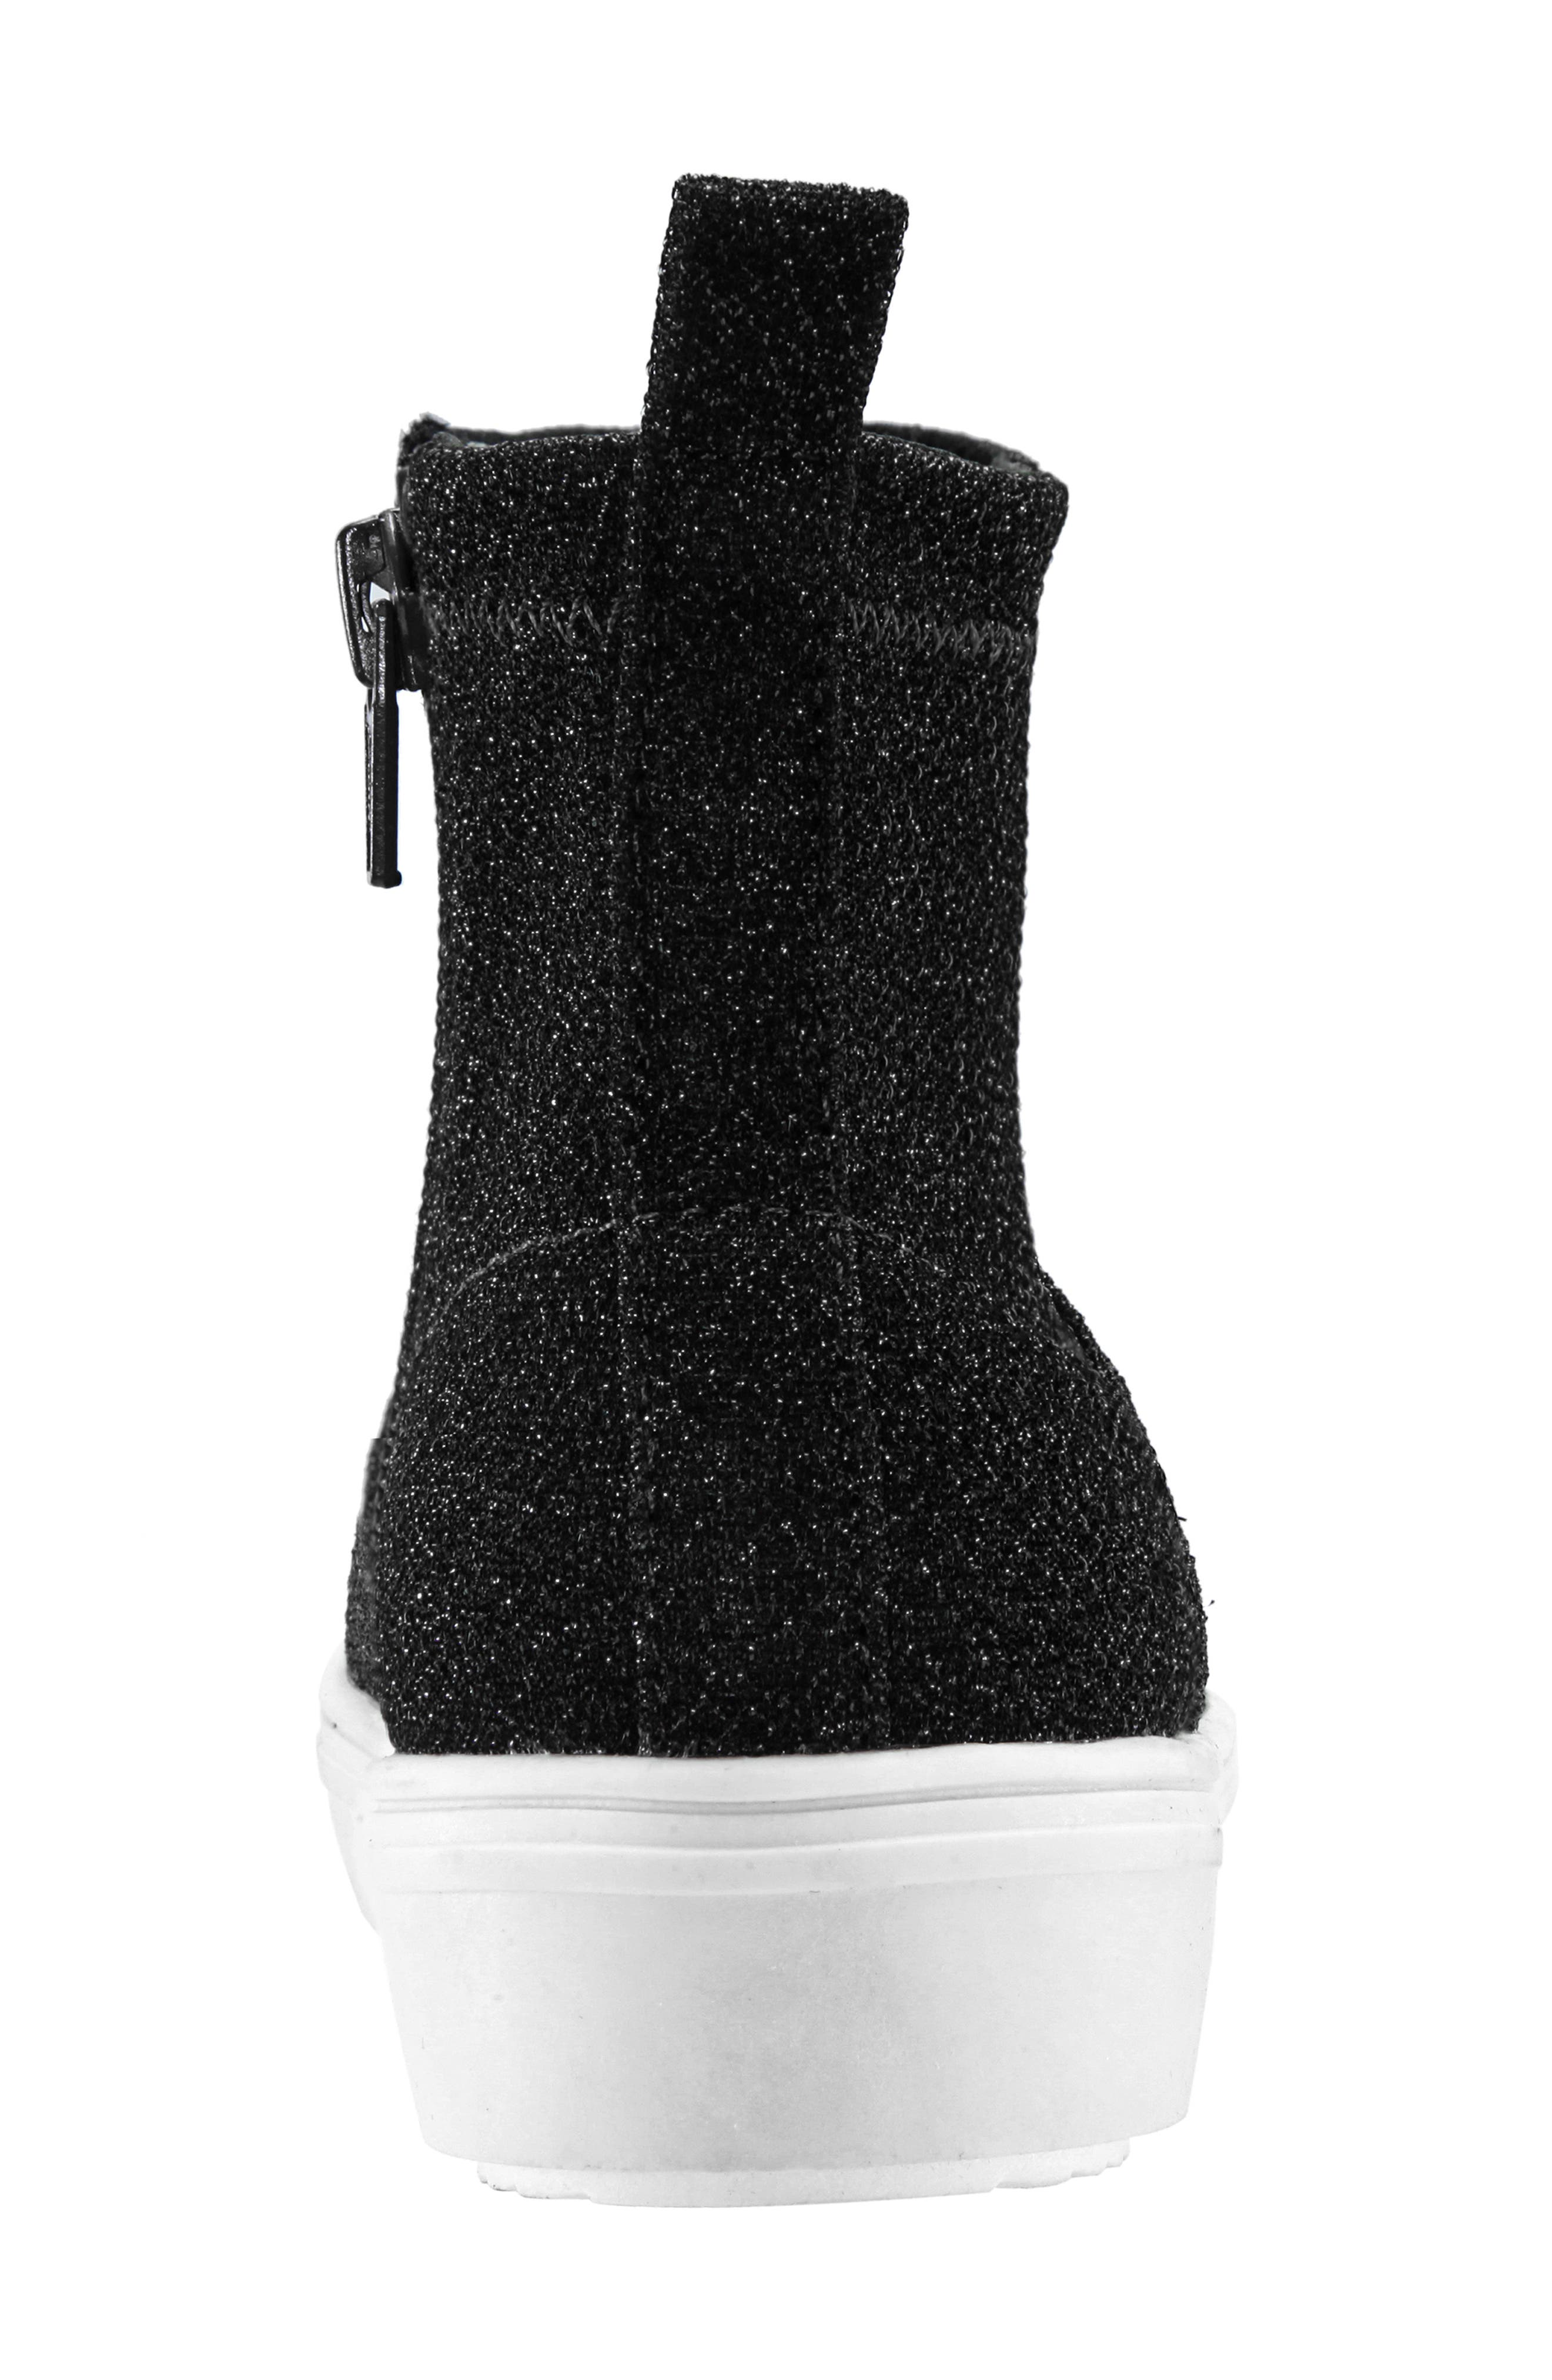 Isha Sparkle High Top Sneaker,                             Alternate thumbnail 7, color,                             BLACK STRETCH SPARKLE